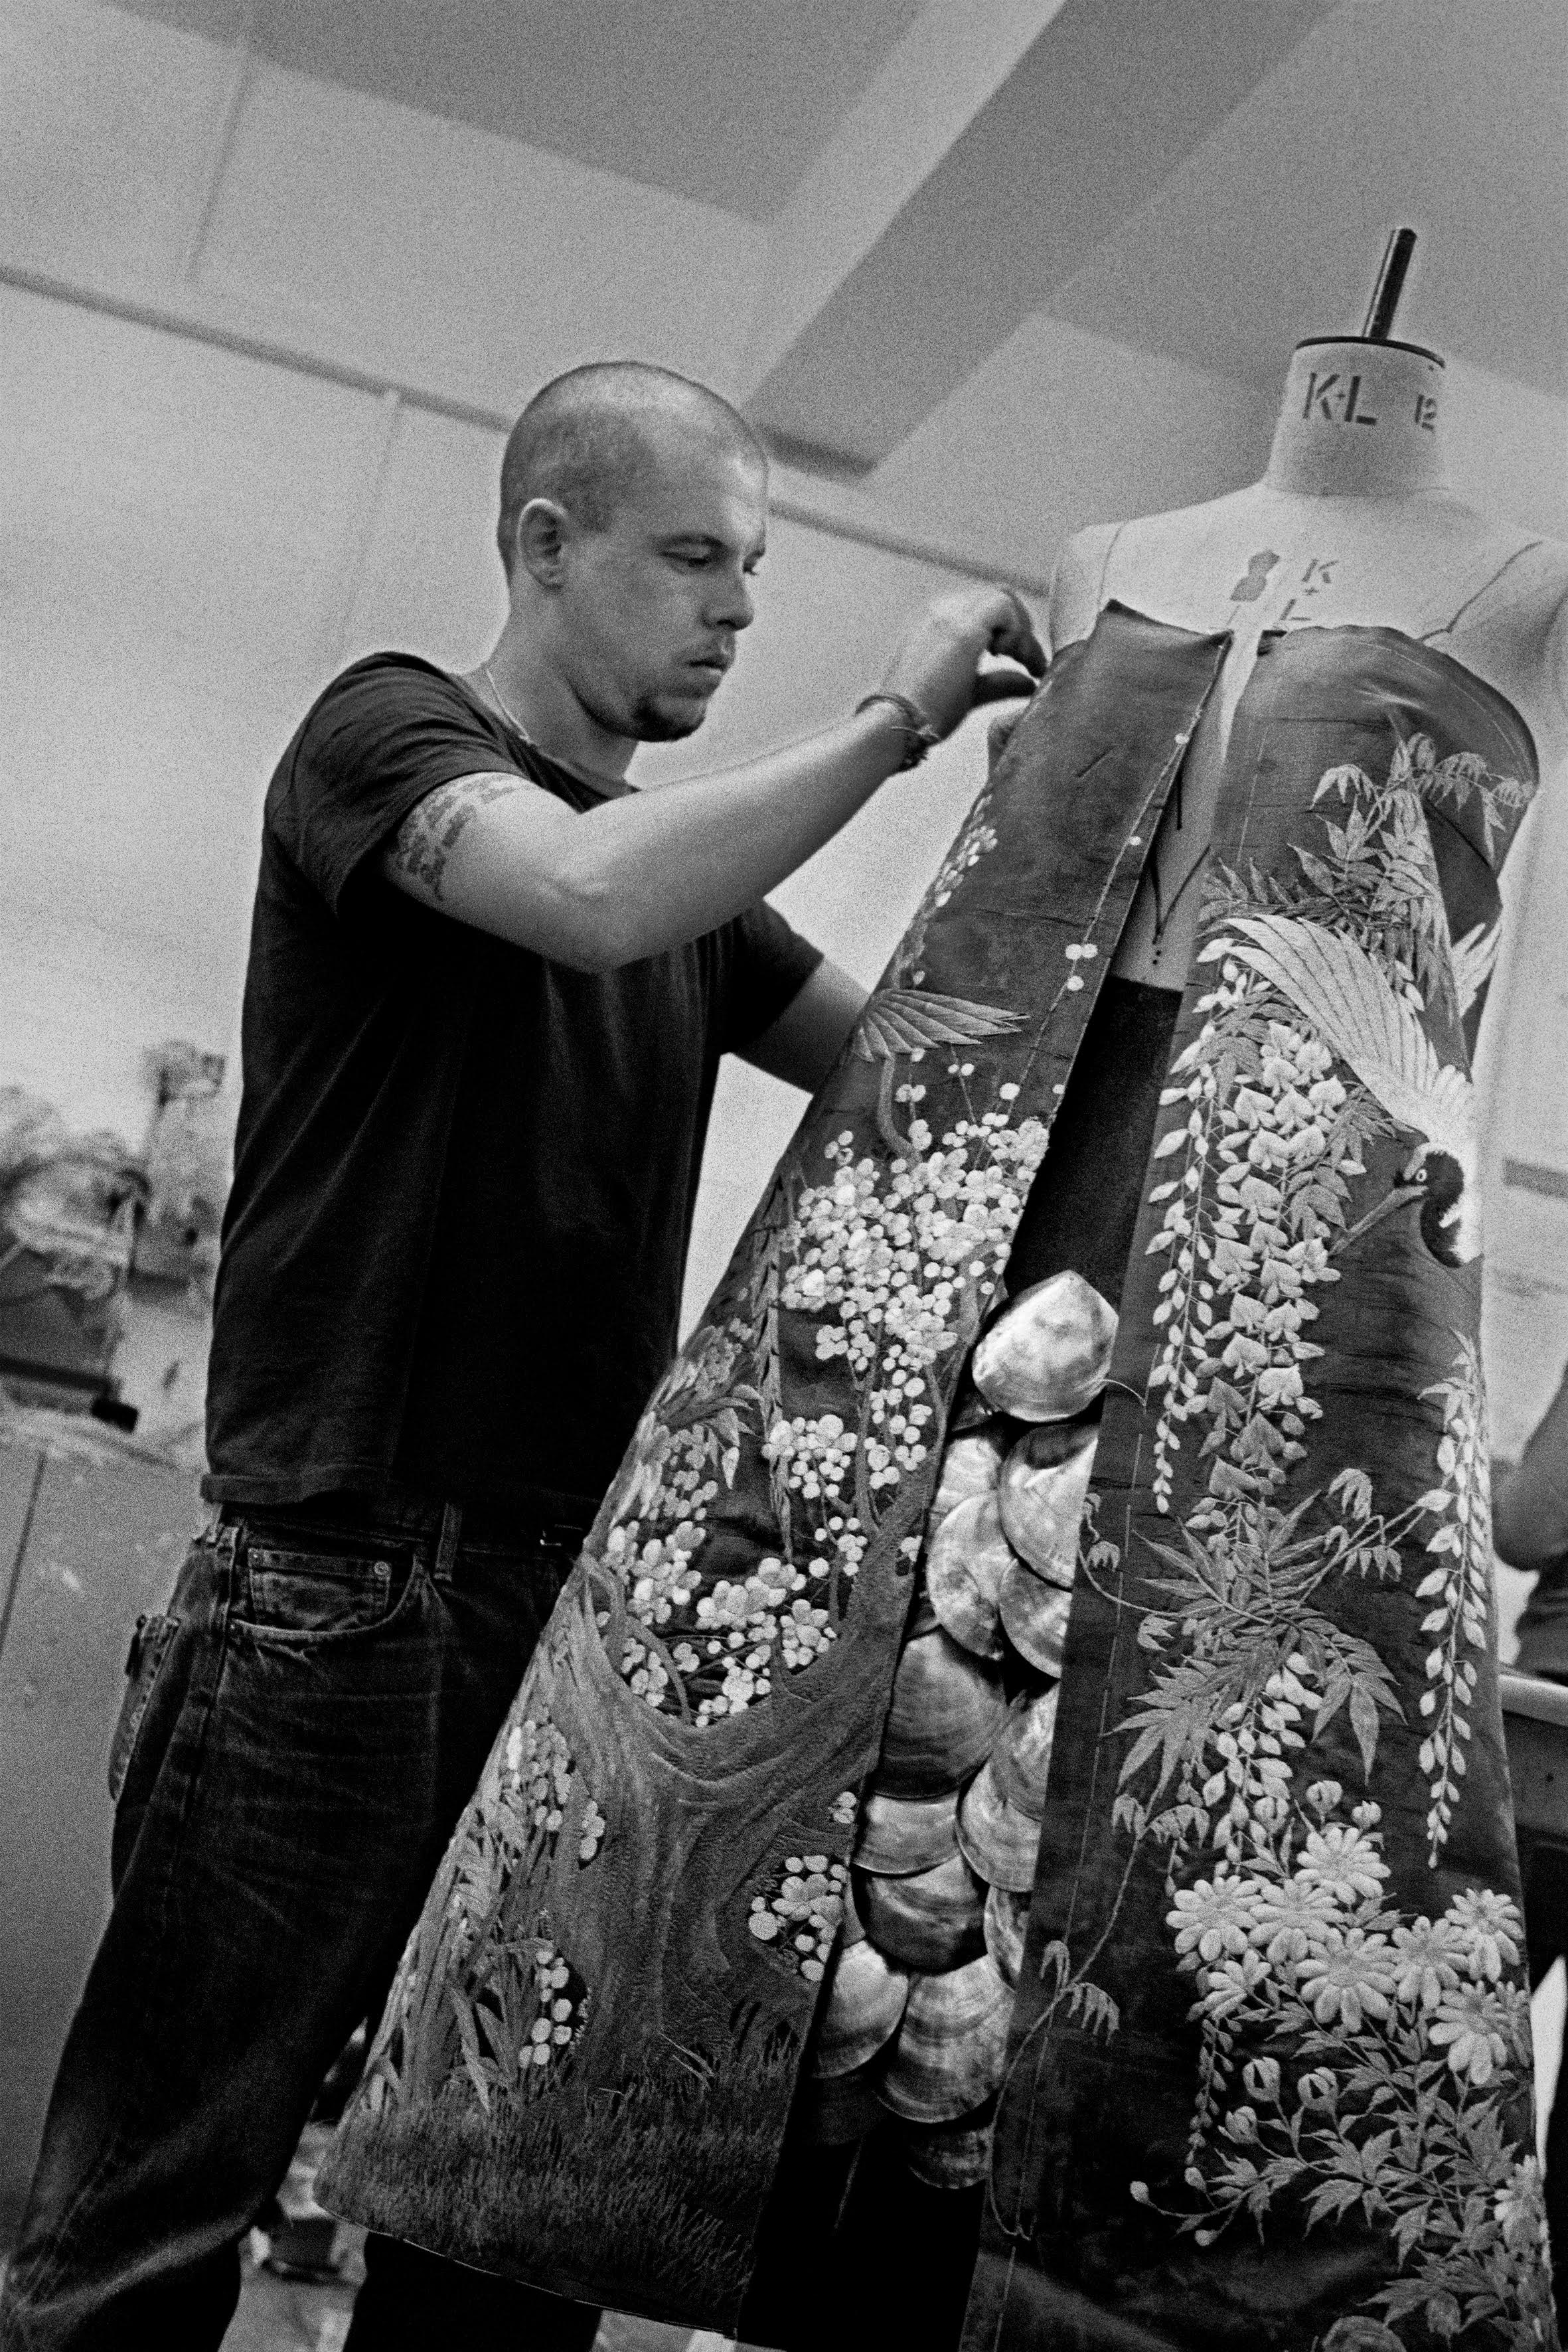 McQueen working on the shell dress, which appeared in the Voss show.